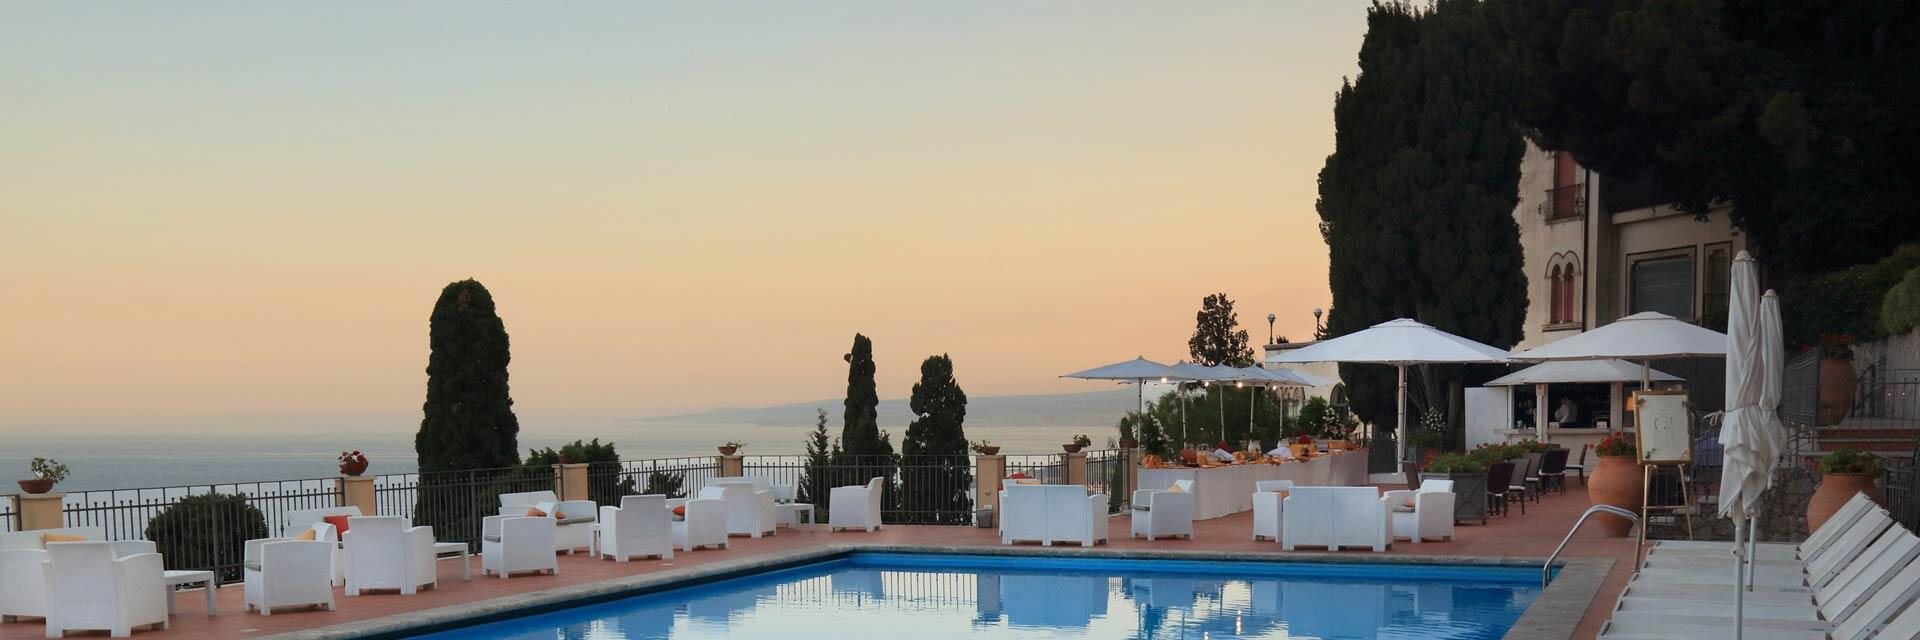 sanpietrotaormina en offer-day-use-at-hotel-in-taormina-with-pool-and-aperitivo 012